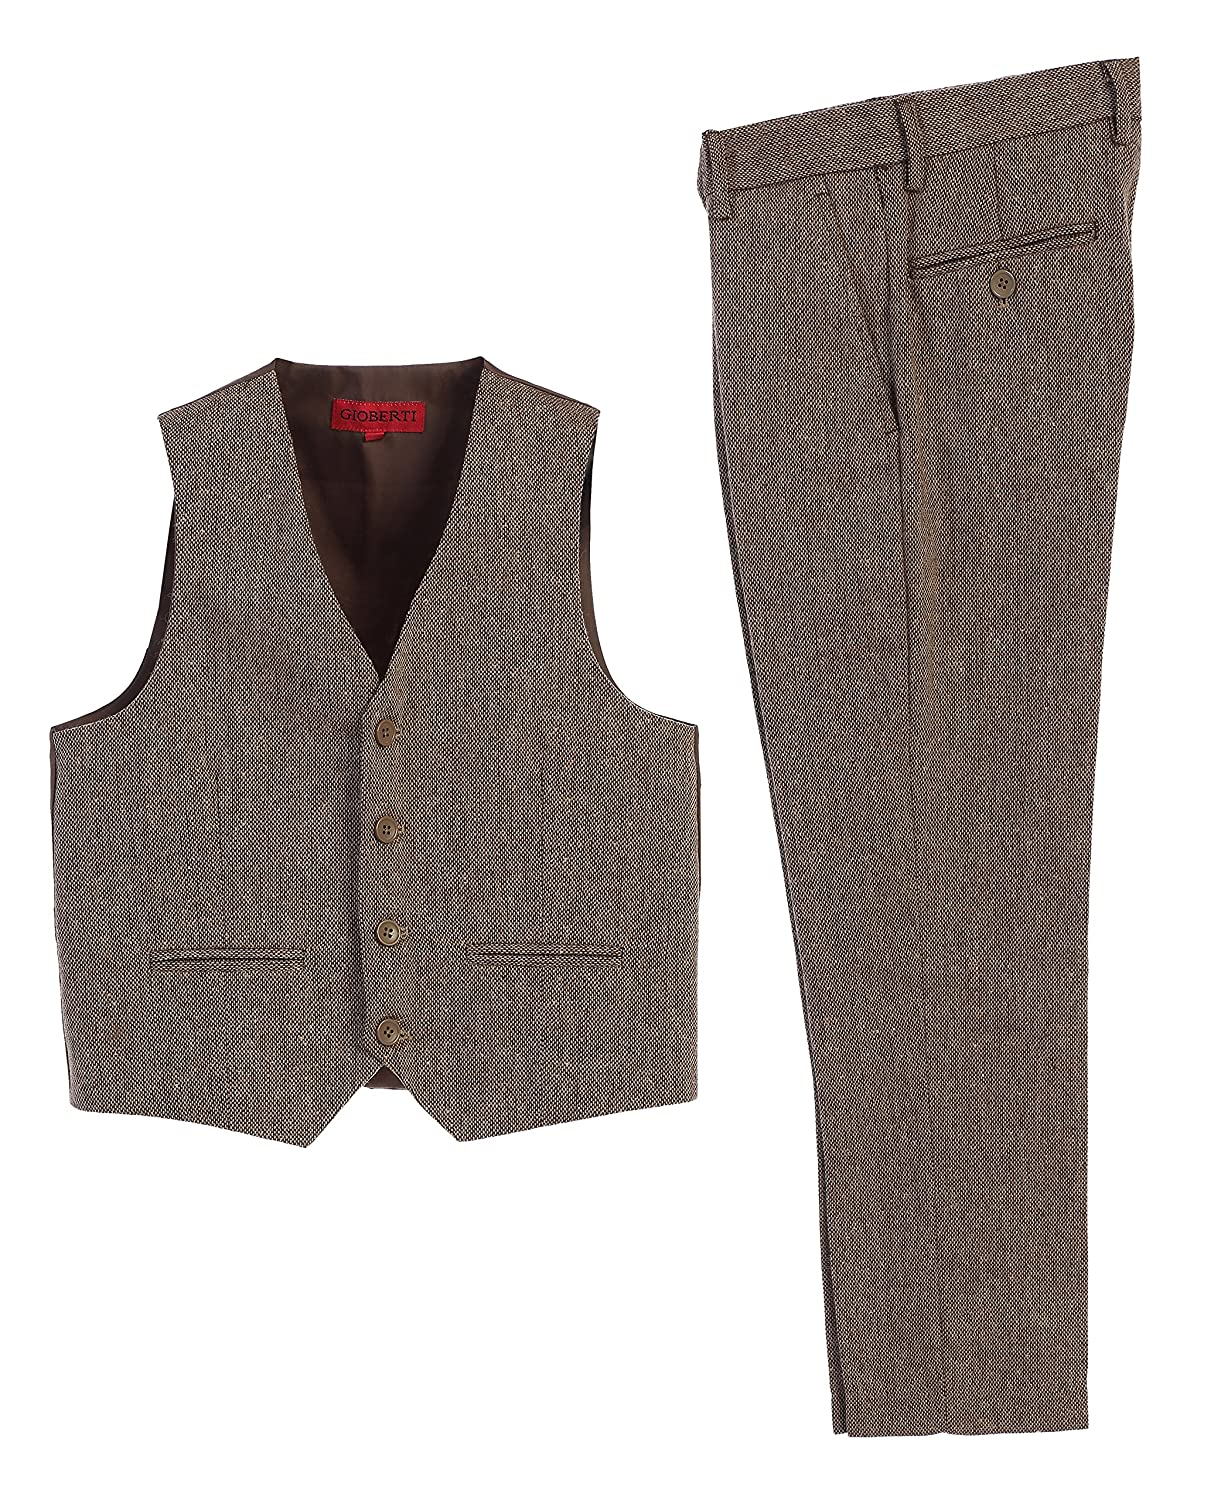 Steampunk Kids Costumes | Girl, Boy, Baby, Toddler  Boys 2 Piece Tweed Plaid Vest and Pants Set Gioberti $39.99 AT vintagedancer.com